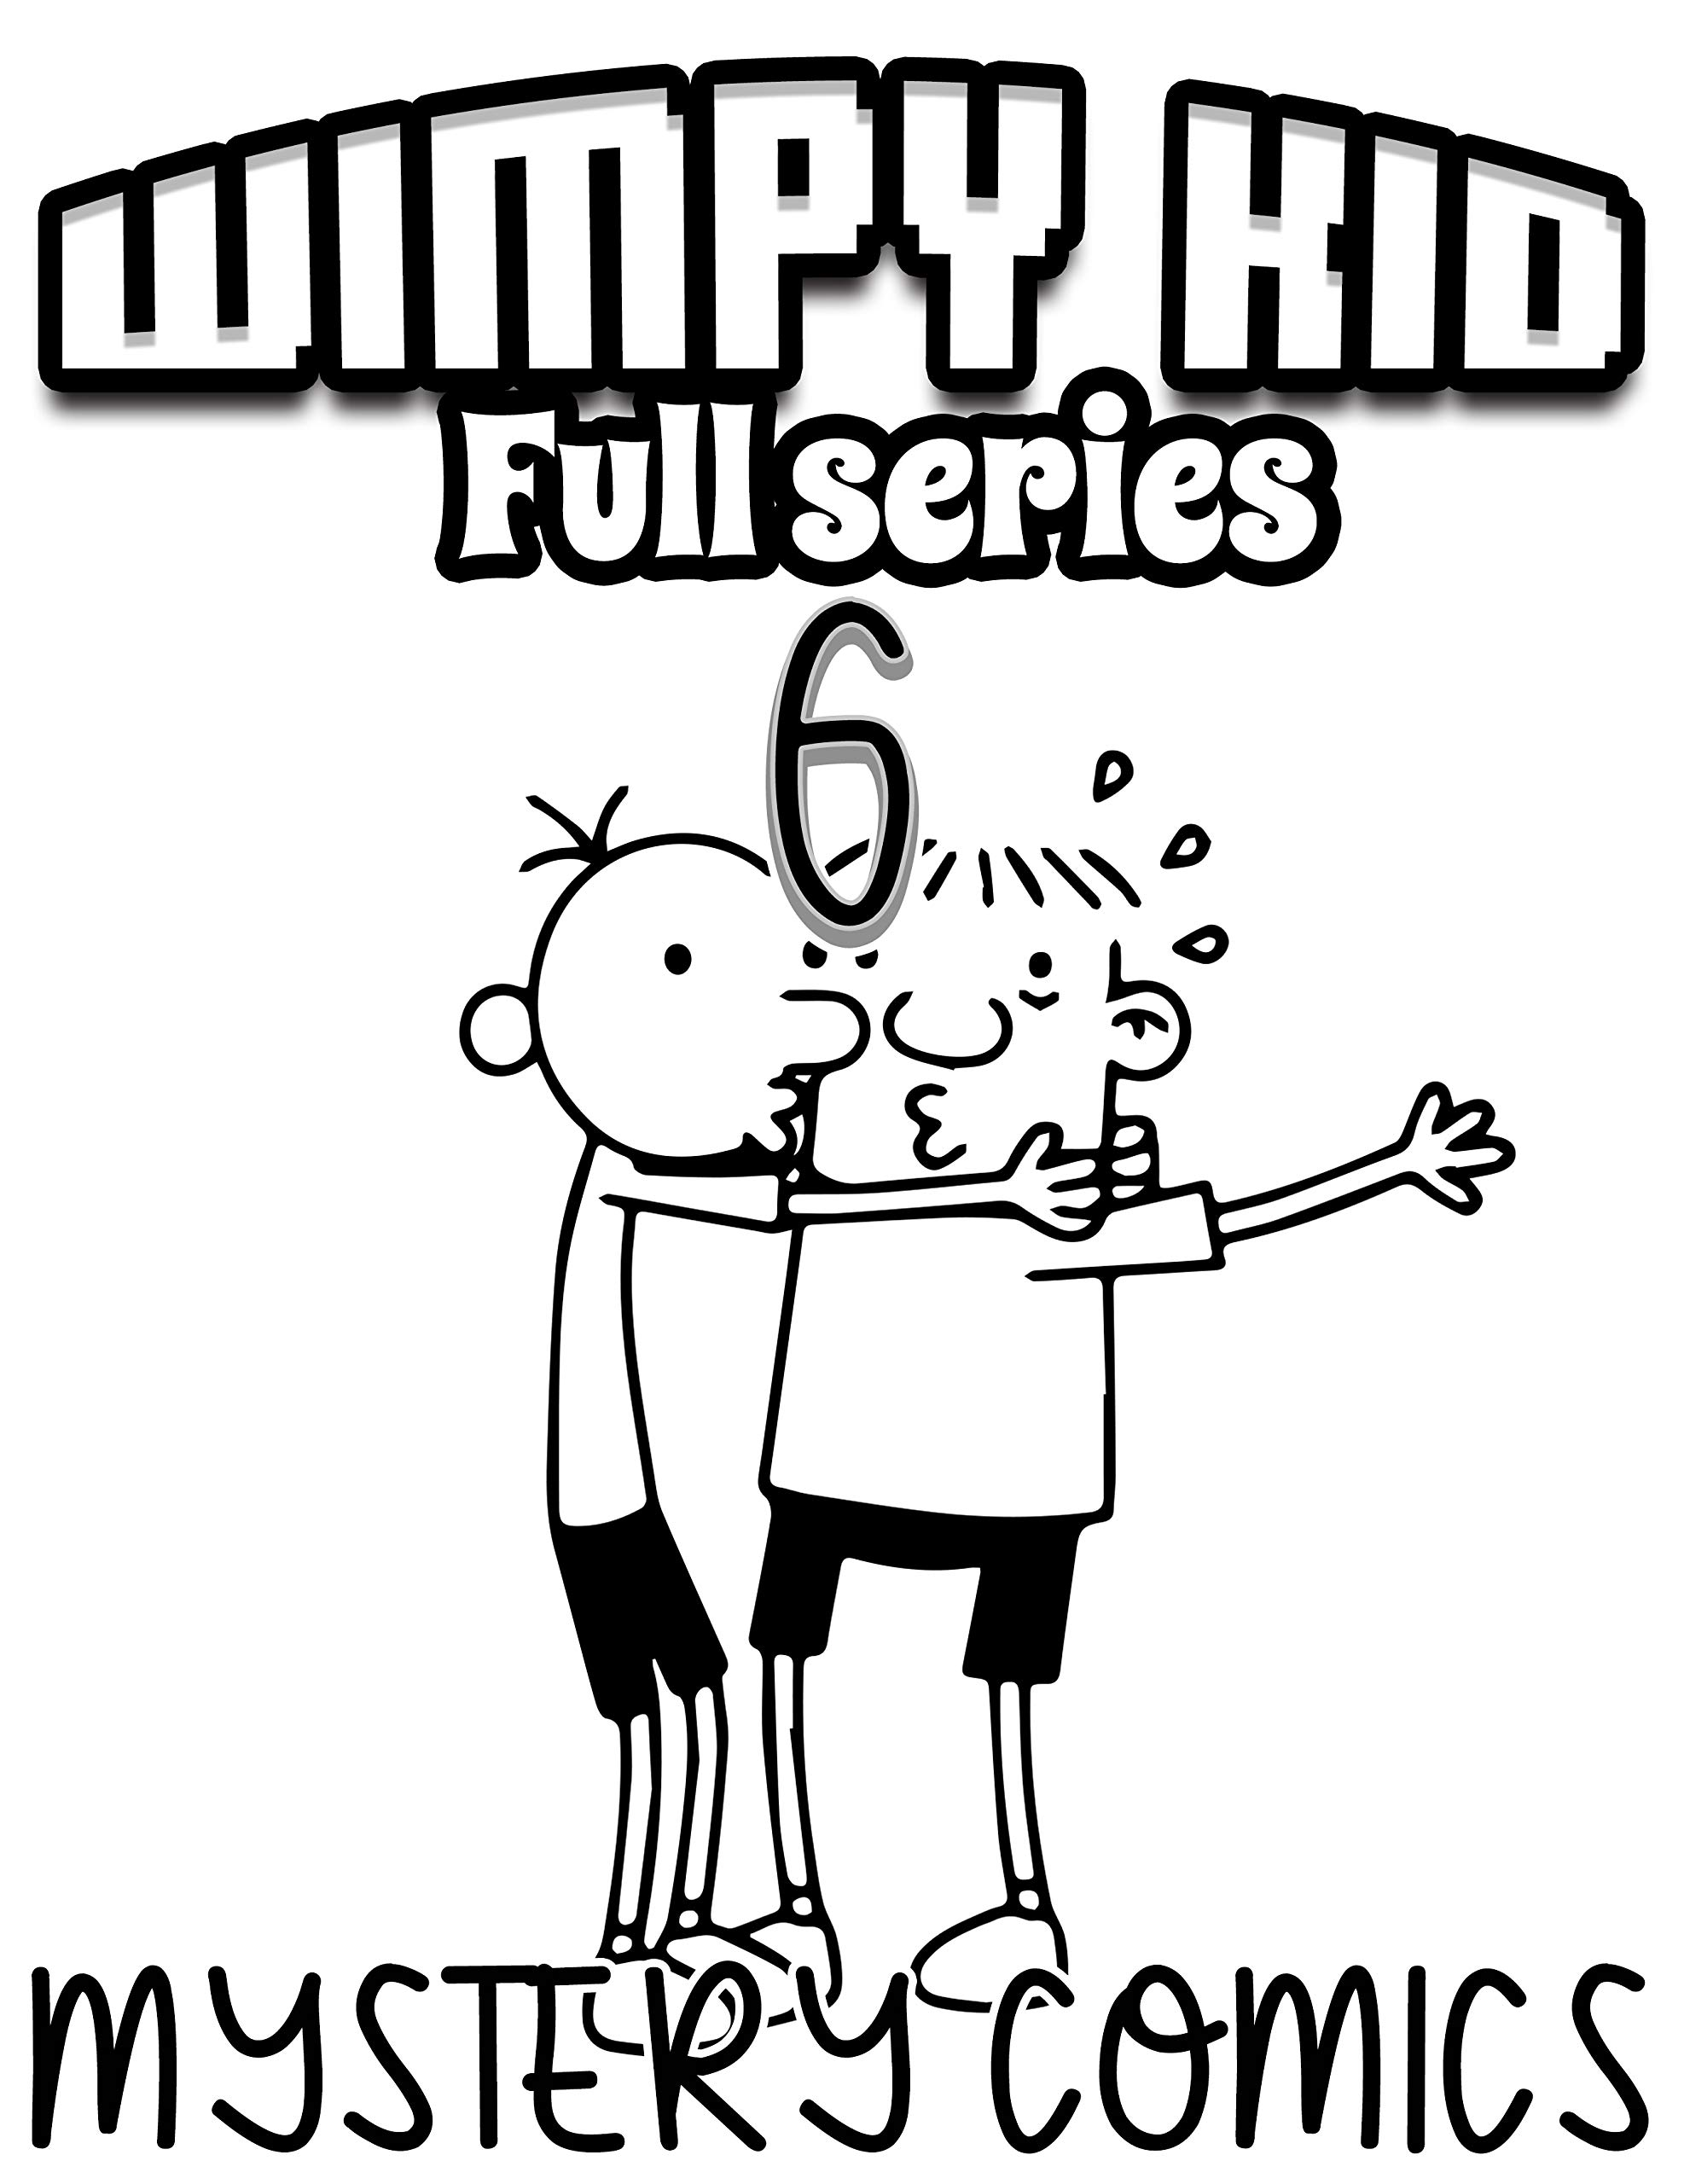 Mystery comics Wimpy kid Full series: Funny Wimpy kid Limited Edition Vol 6